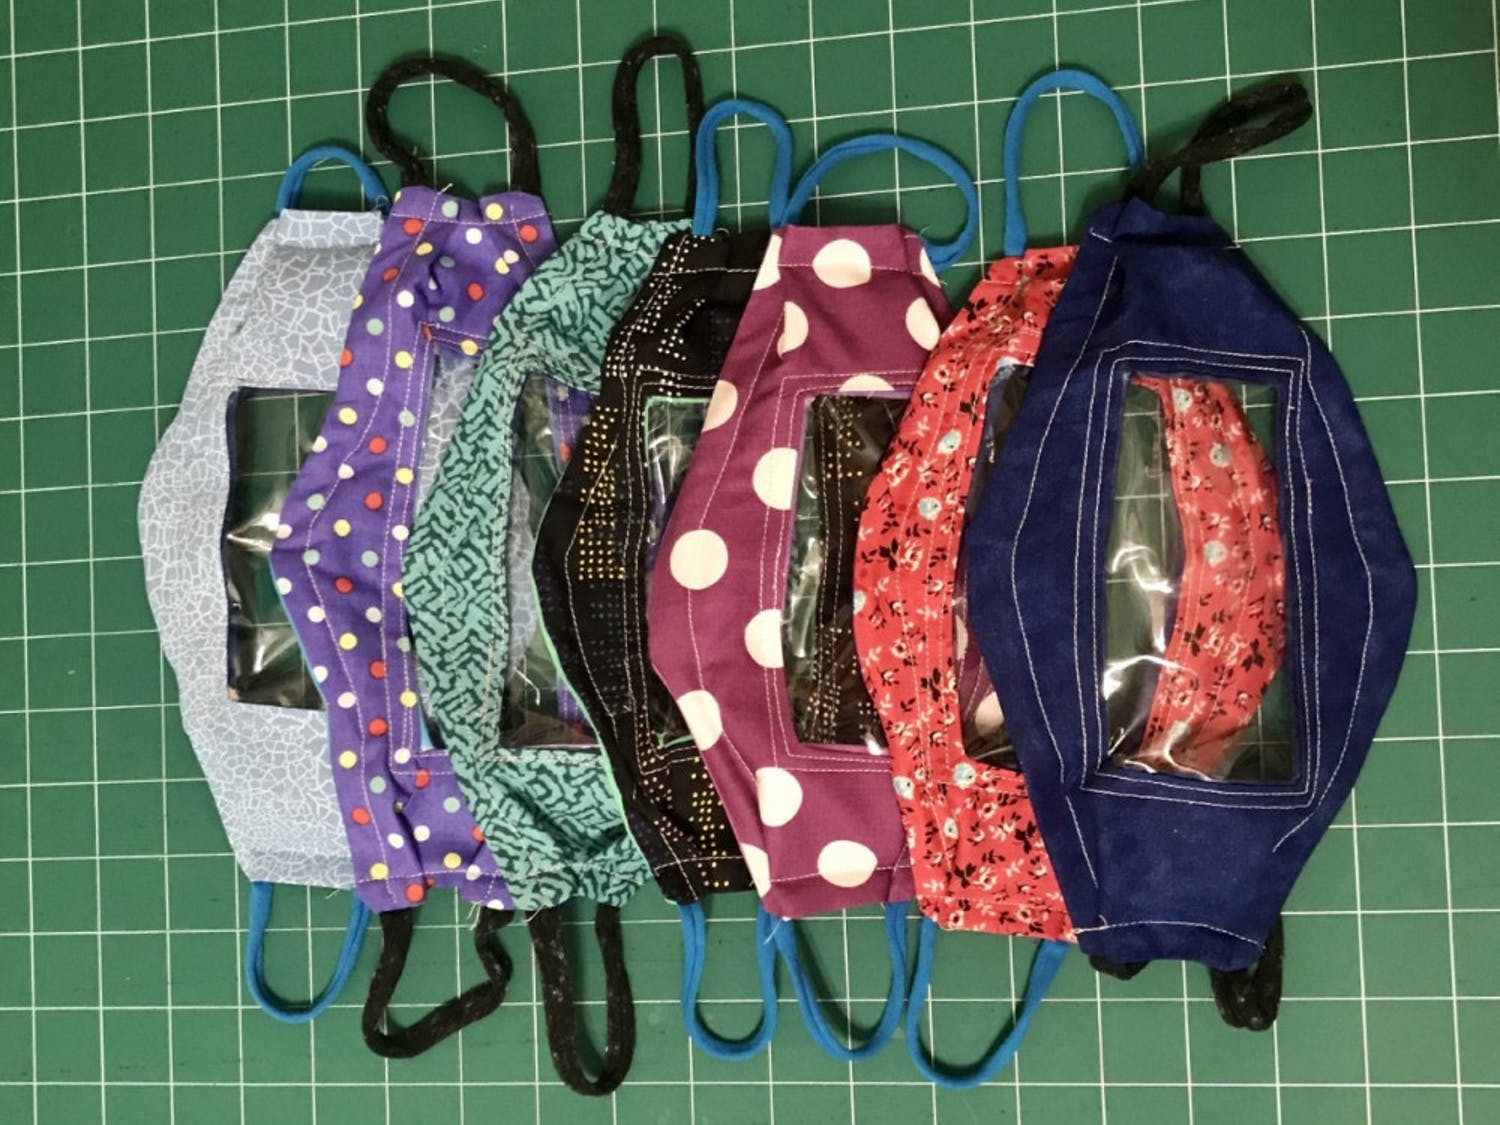 The masks are made from cotton quilting fabric, clear vinyl and T-shirt yarn.